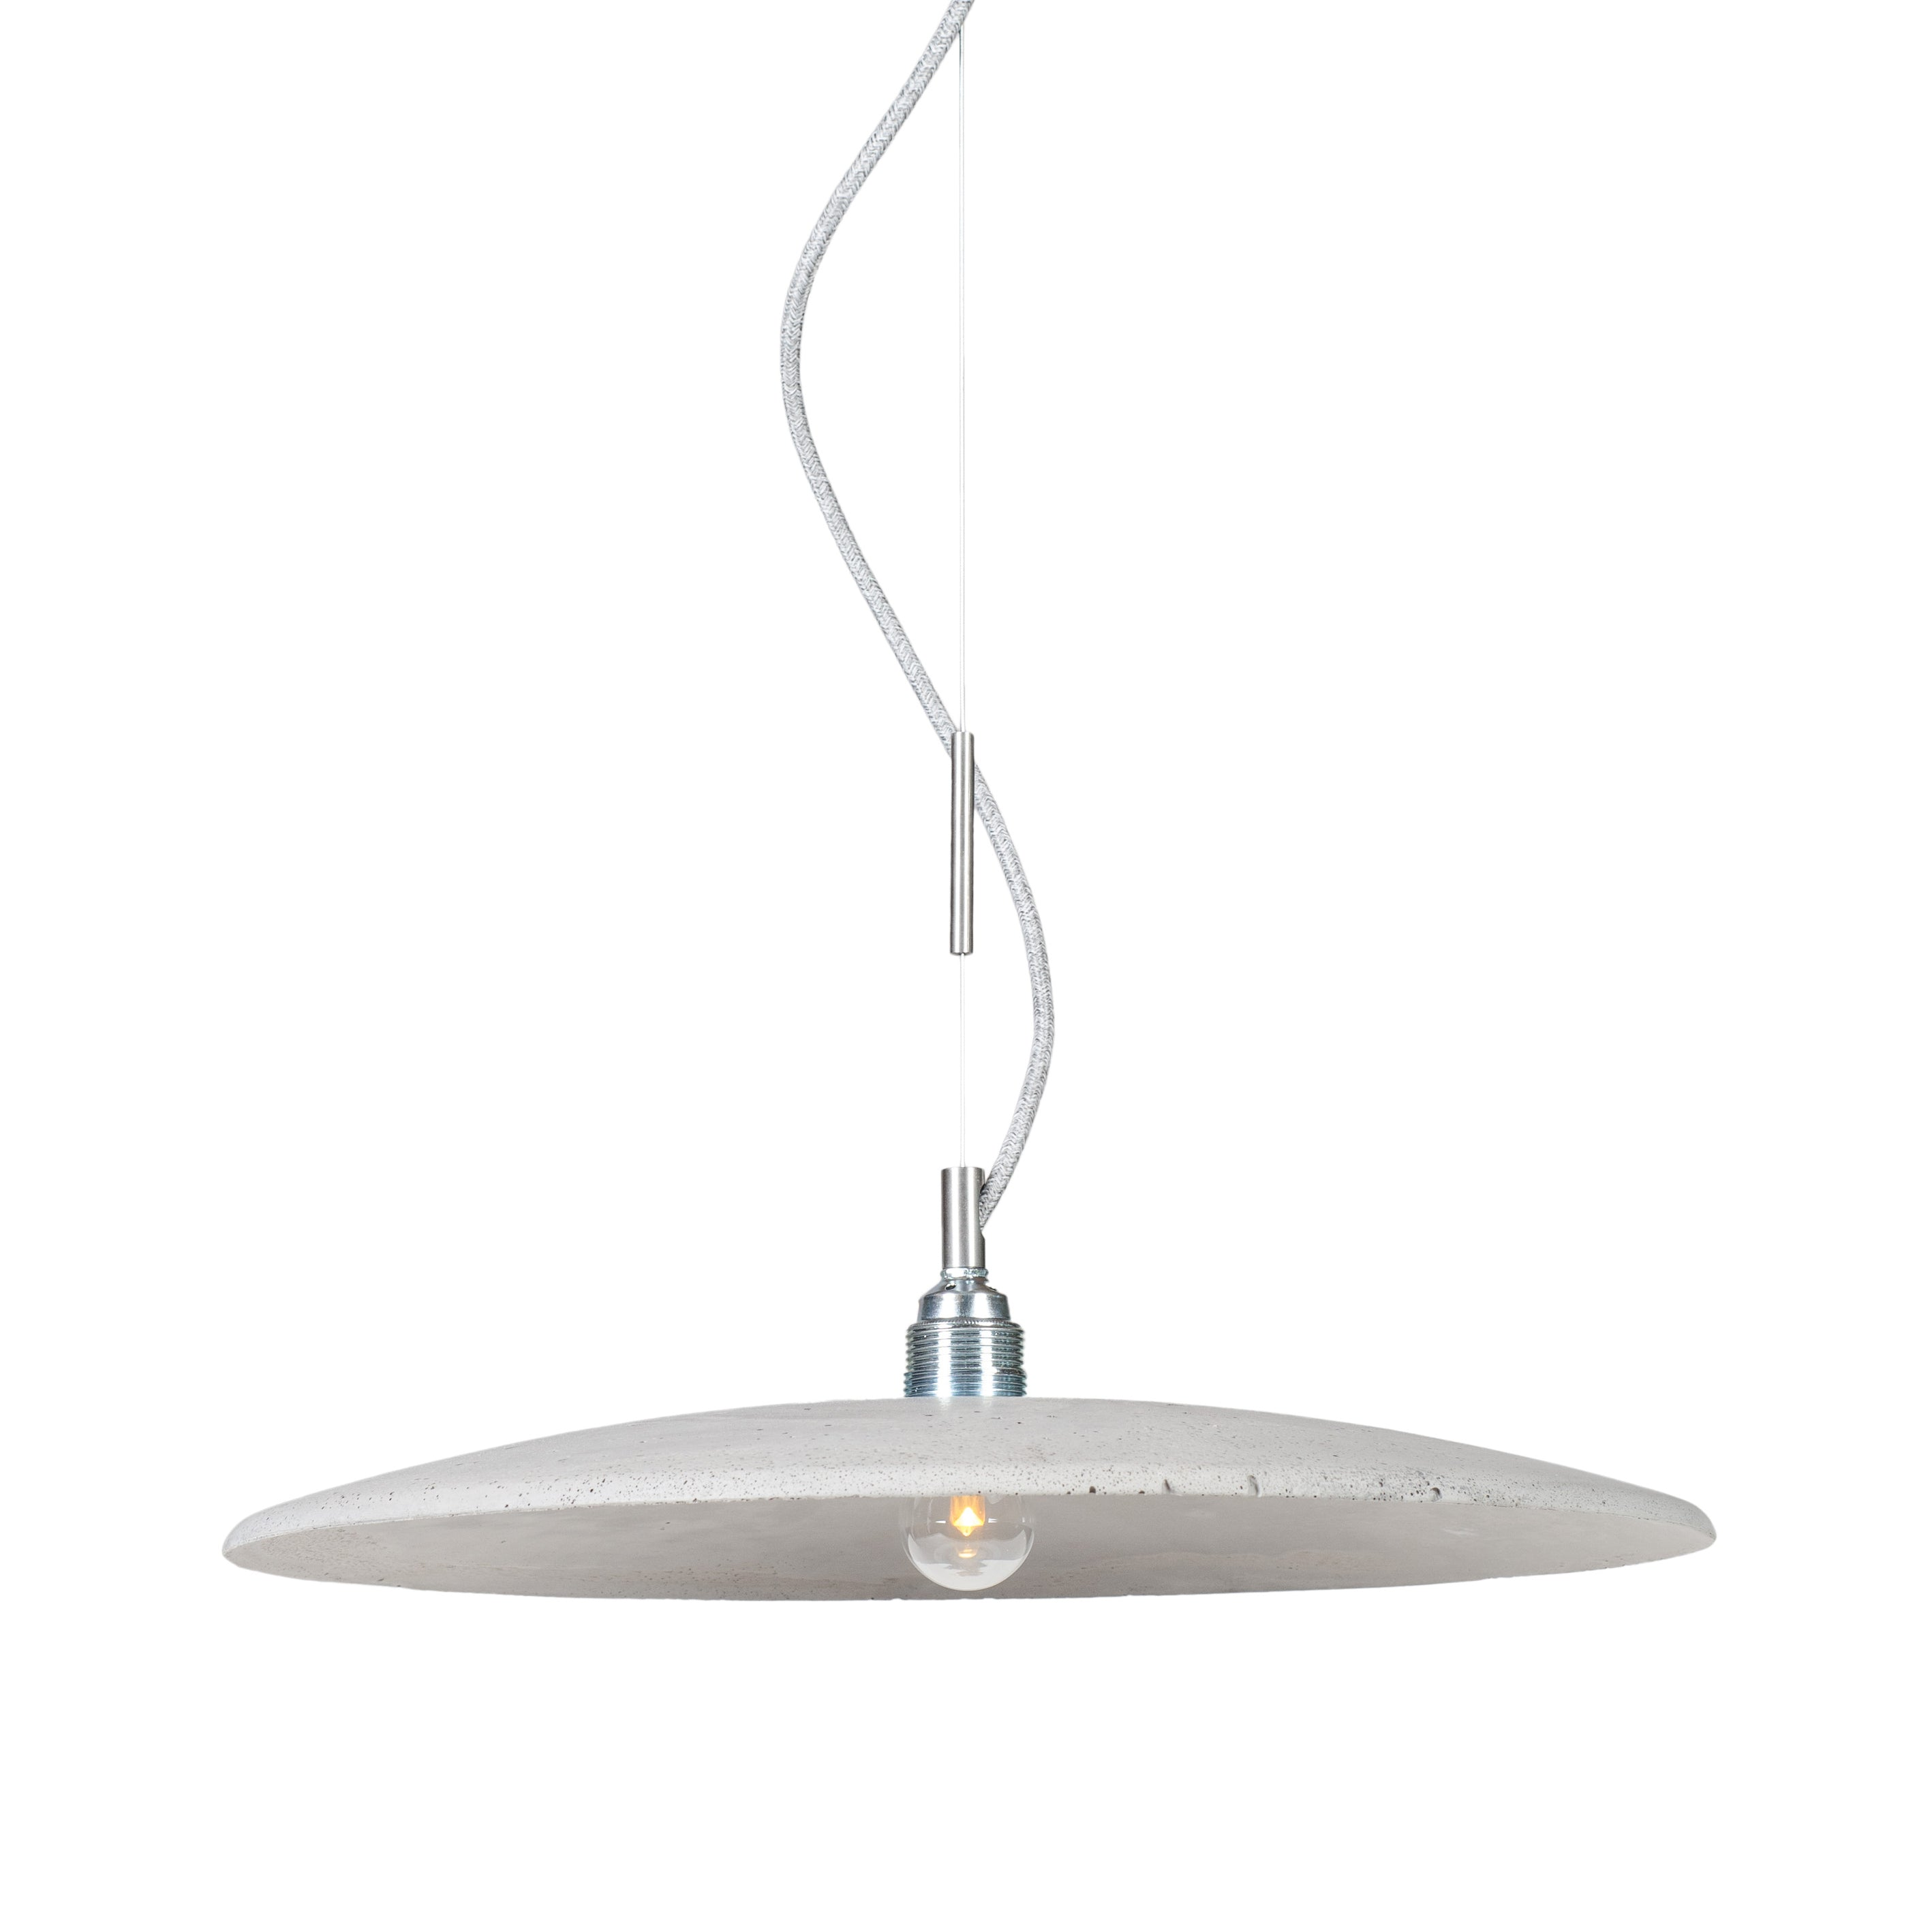 Loftlight Lotna pendant lamp in natural stony hue hand cast in concrete from Warehouse Home